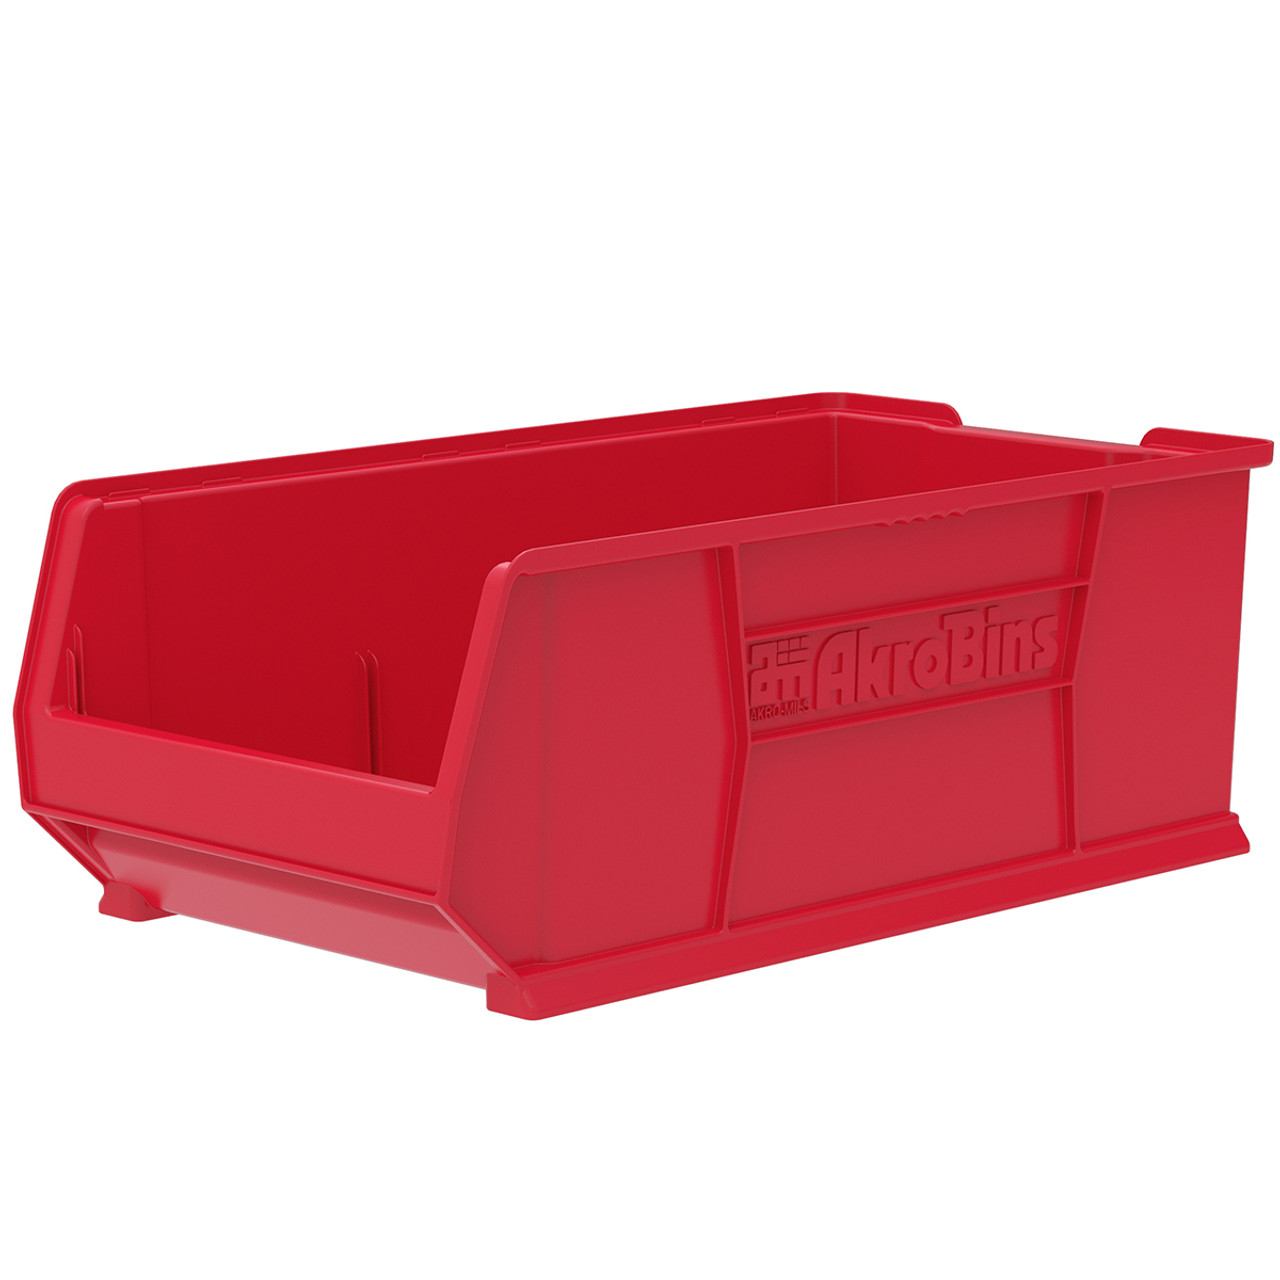 Bin, Super Size AkroBin 29-7/8 x 16-1/2 x 11  30293RED